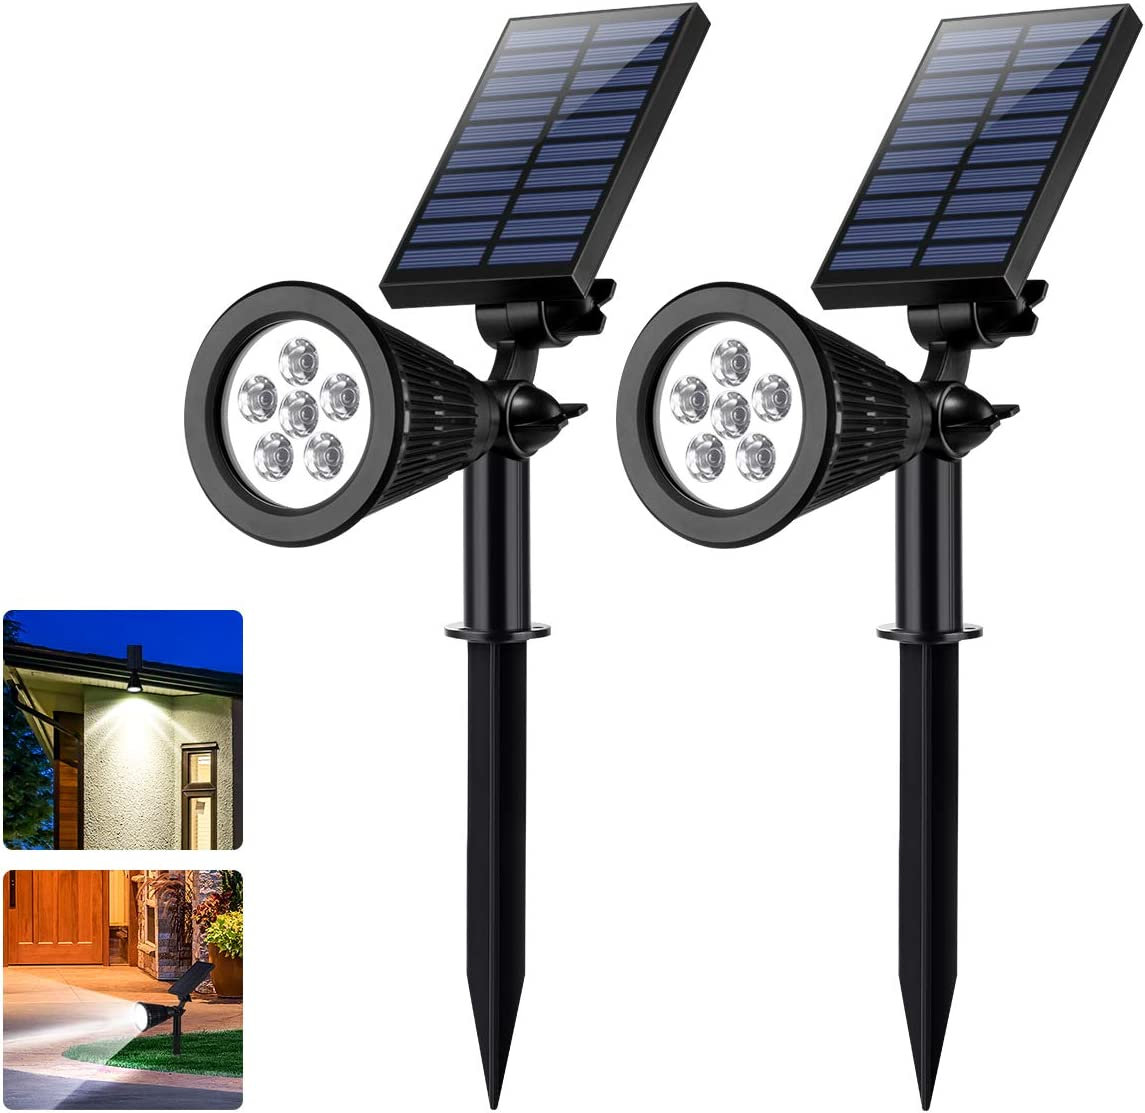 Sunix Solar Spotlights, Outdoor Solar Powered 6 LED Adjustable Spotlight Wall Light Landscape Light Bright and Dark Sensing Auto On Off Security Night for Yard Garden Driveway Pathway Pool, 2 Pack